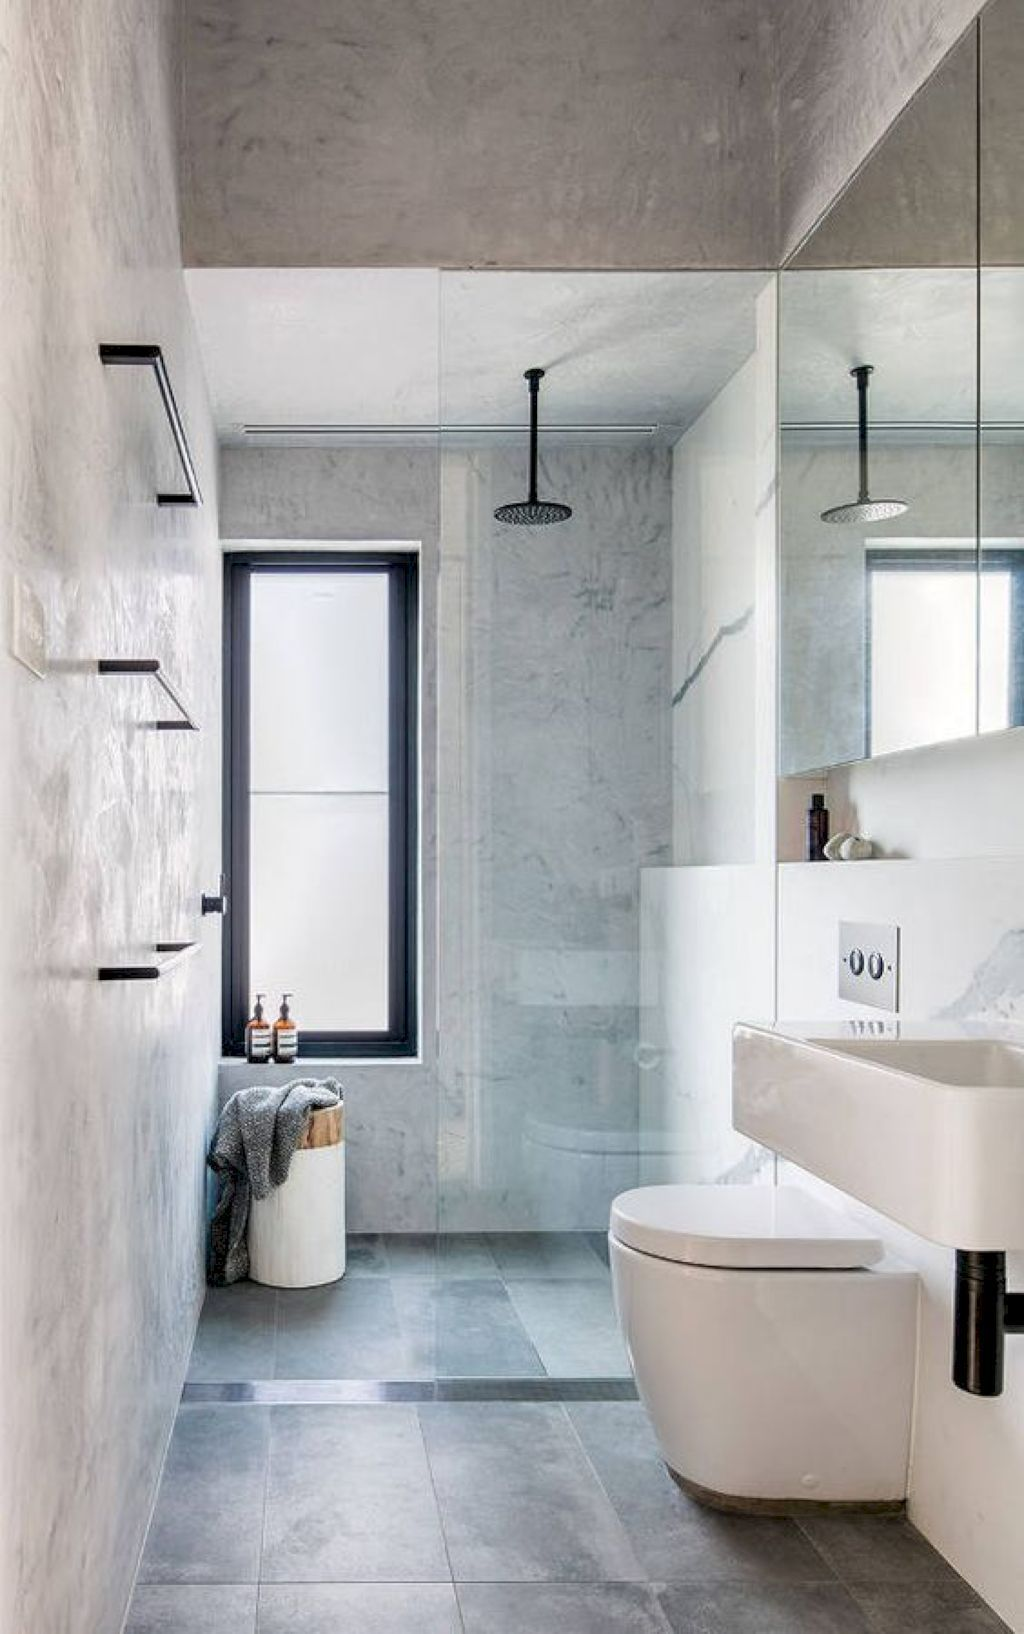 Best Of Bathroom In Basement without Breaking Concrete